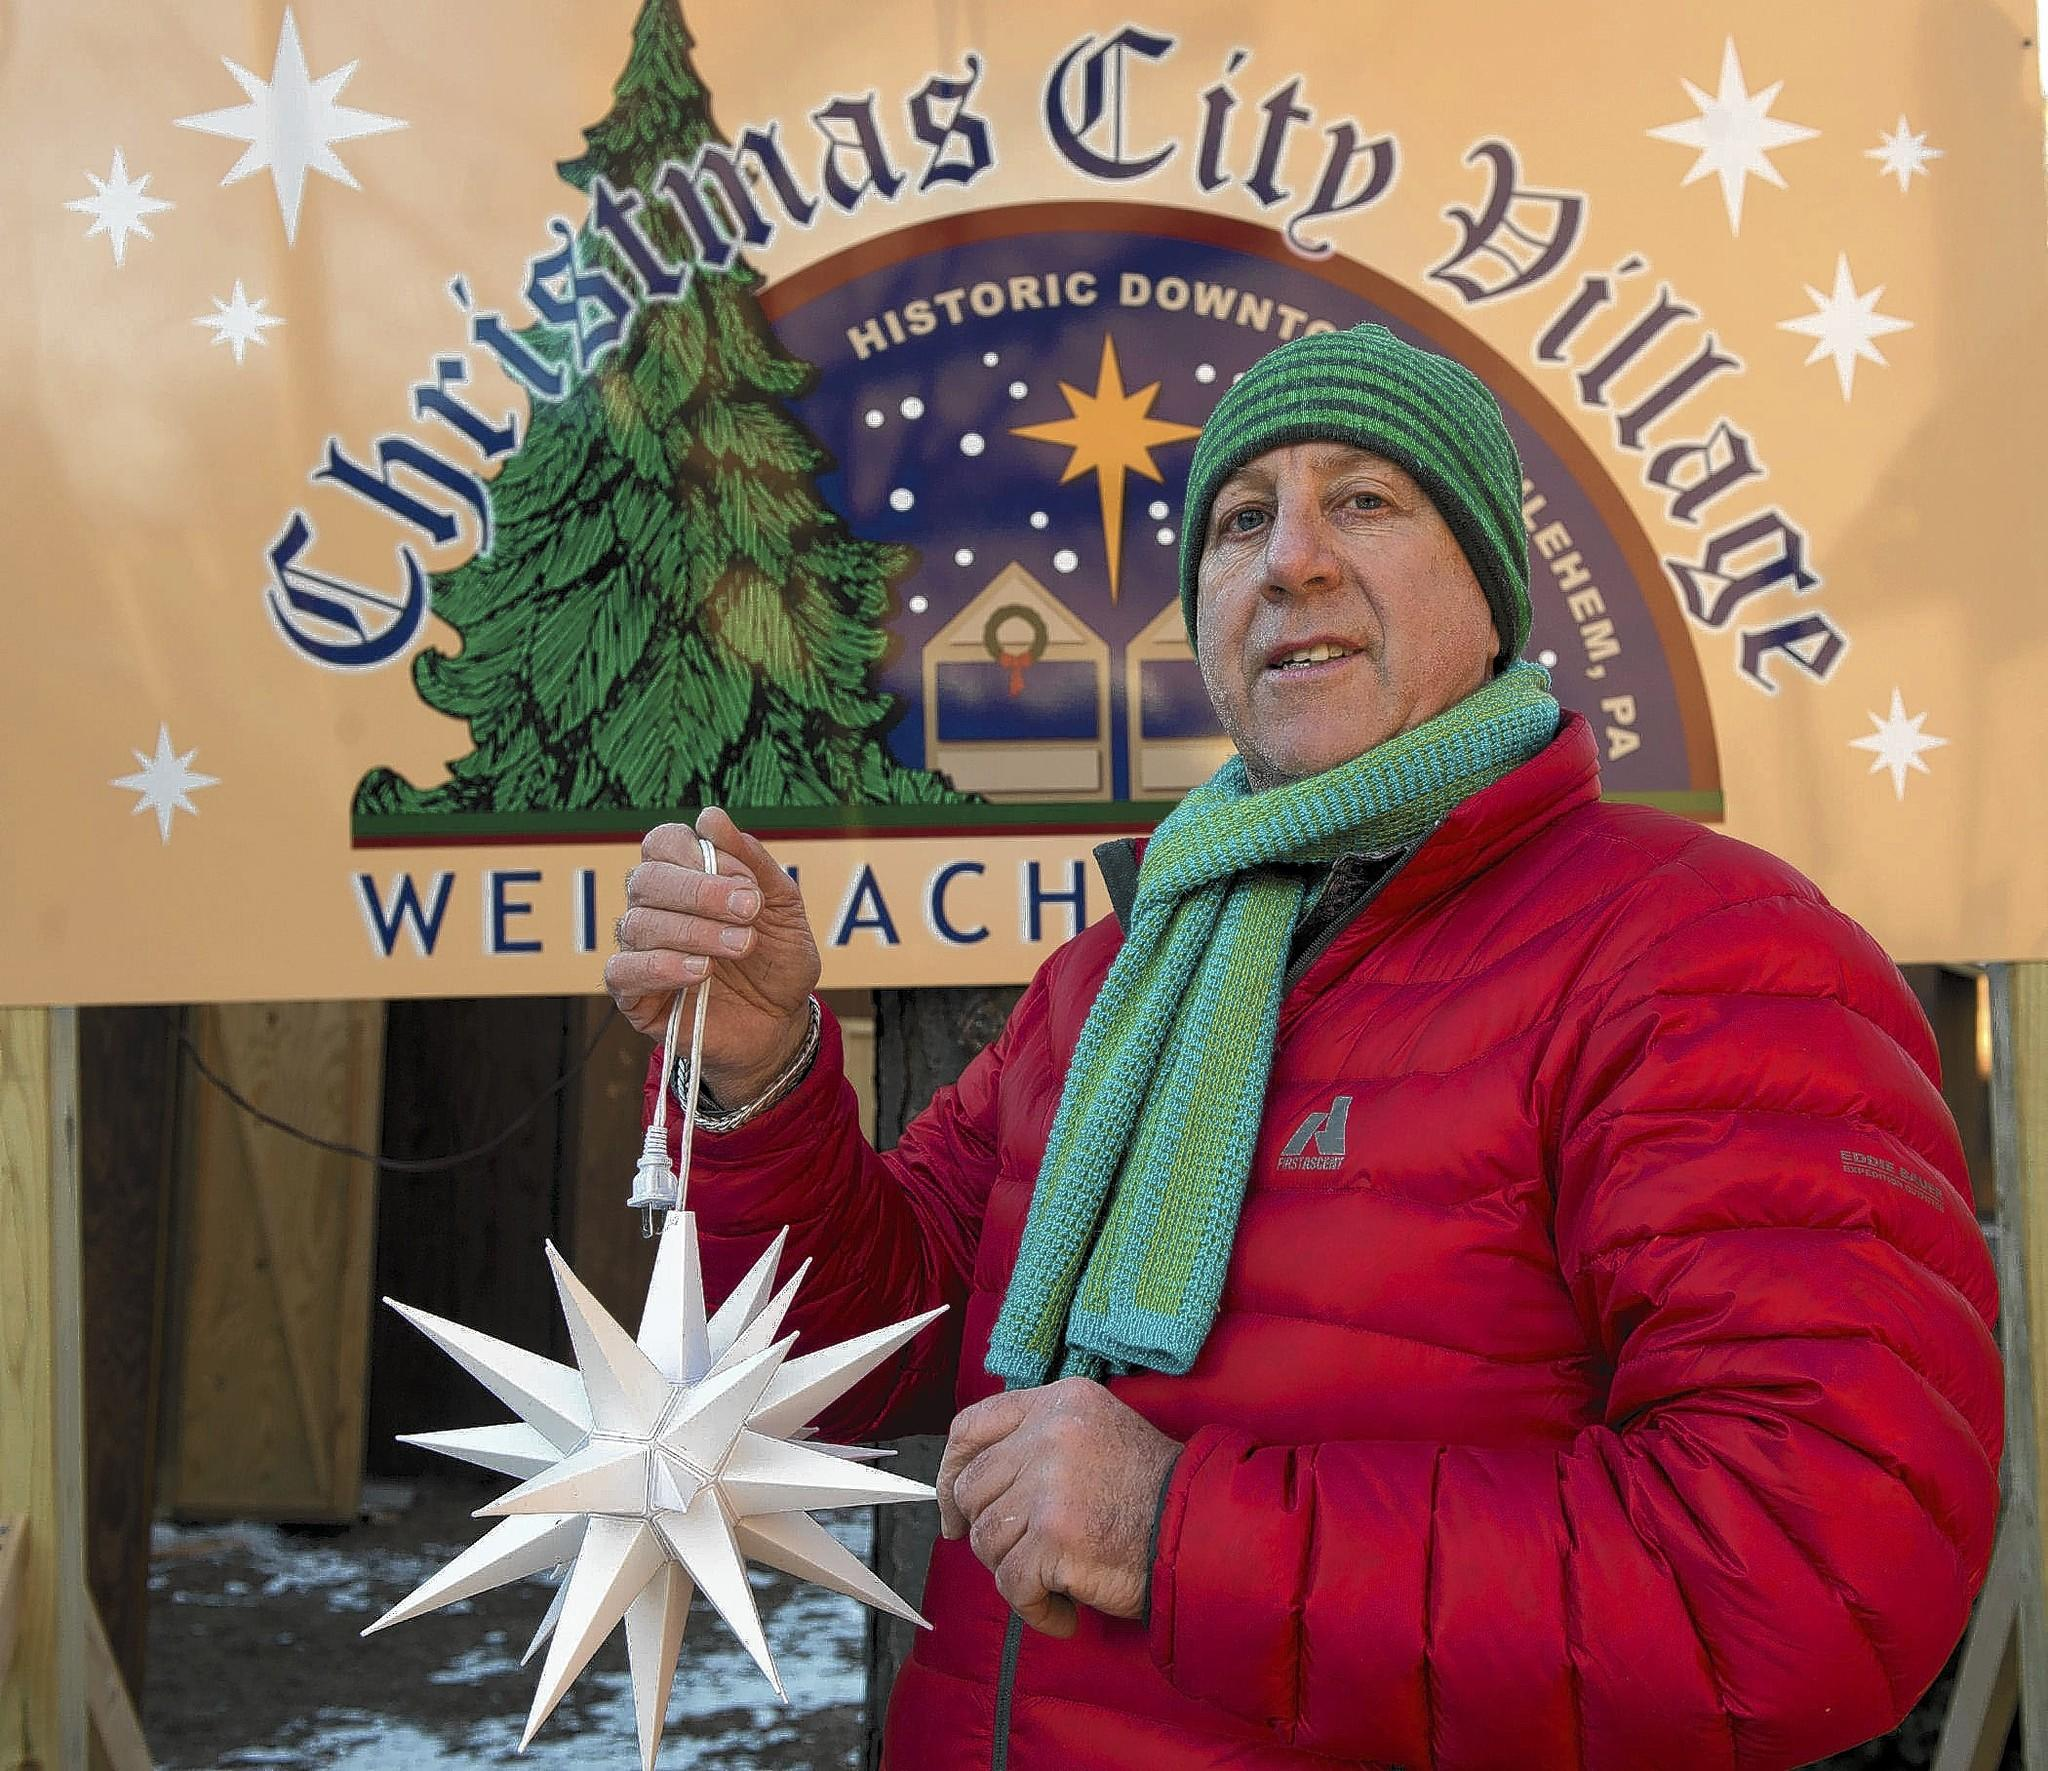 Donegal Square and McCarthy's Restaurant owner Neville Gardner poses at the Christmas Village in Bethlehem on Thursday.